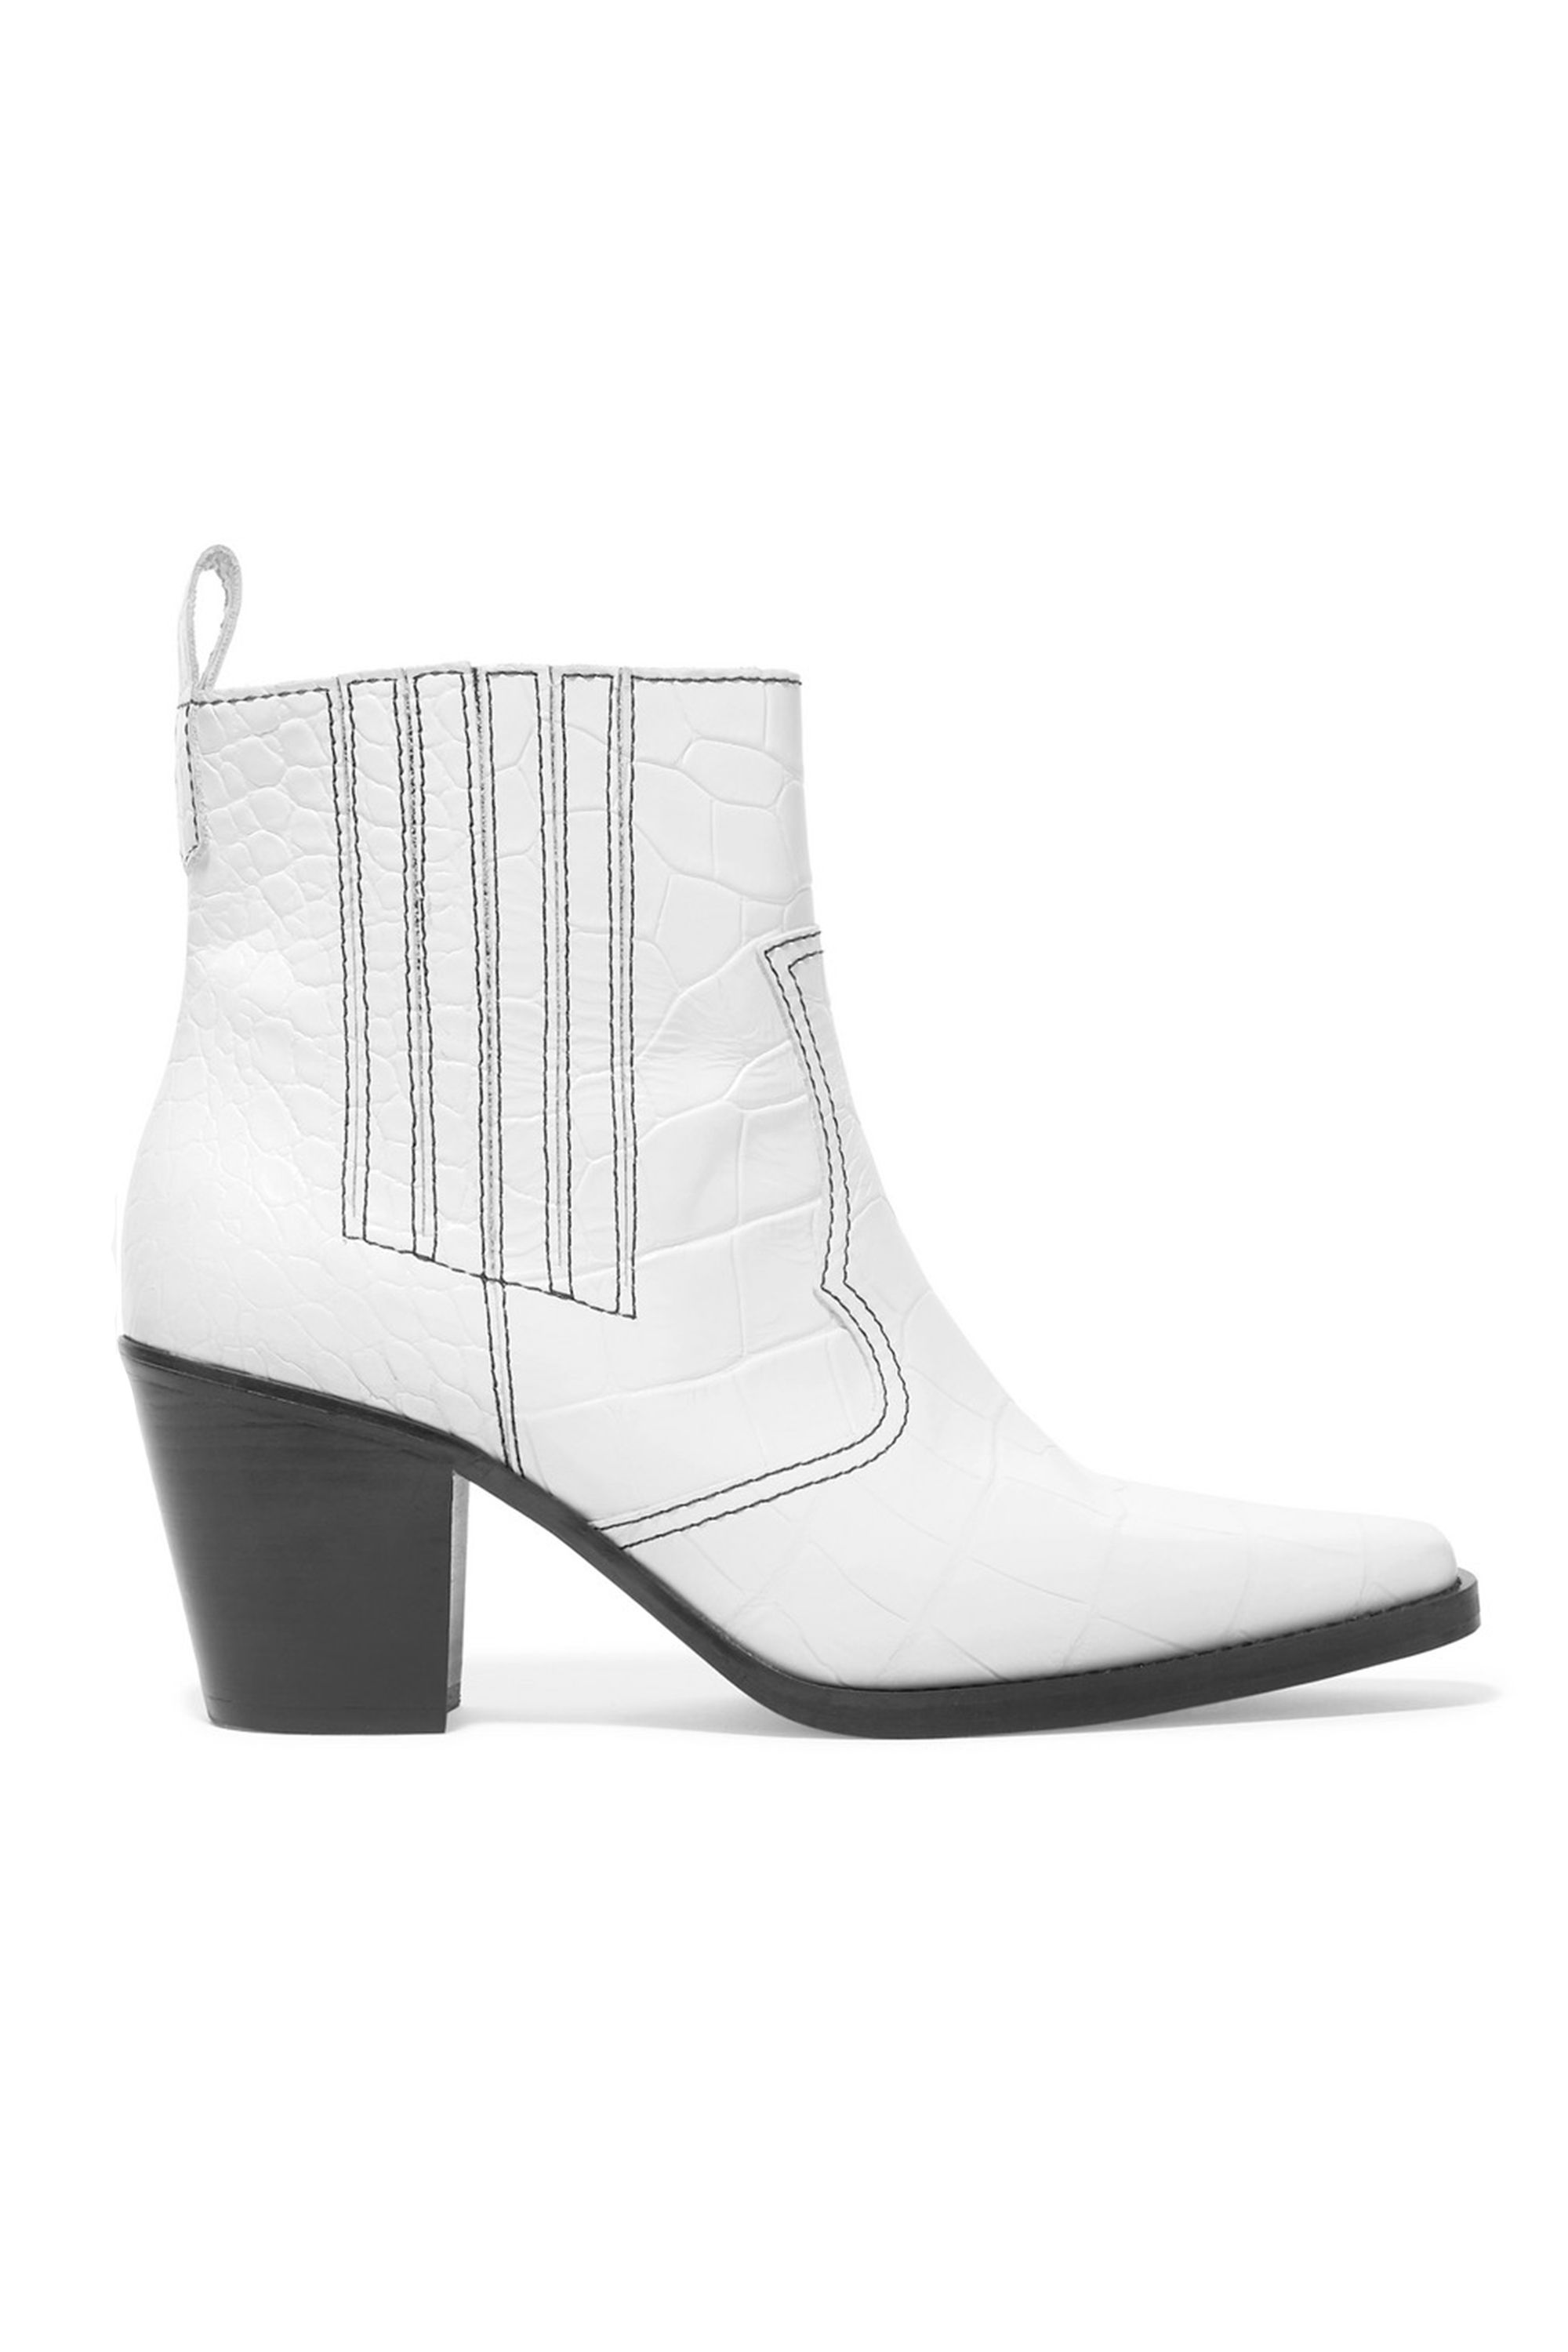 435fce84ae02e7 10 best white boots to buy for spring 2019 – How to wear white boots